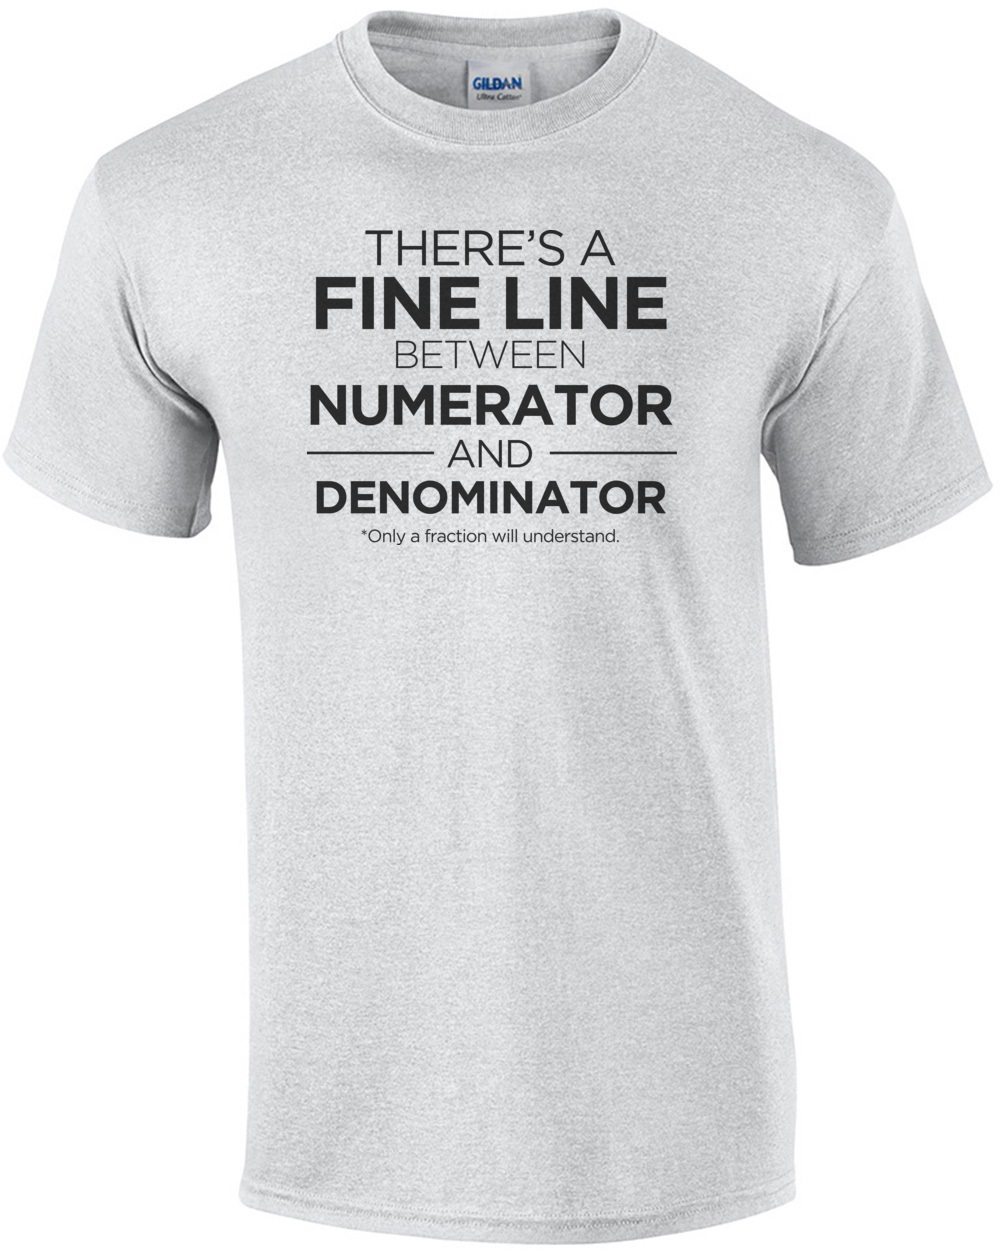 3c323064 There's a fine line between numerator and denominator - funny math t-shirt